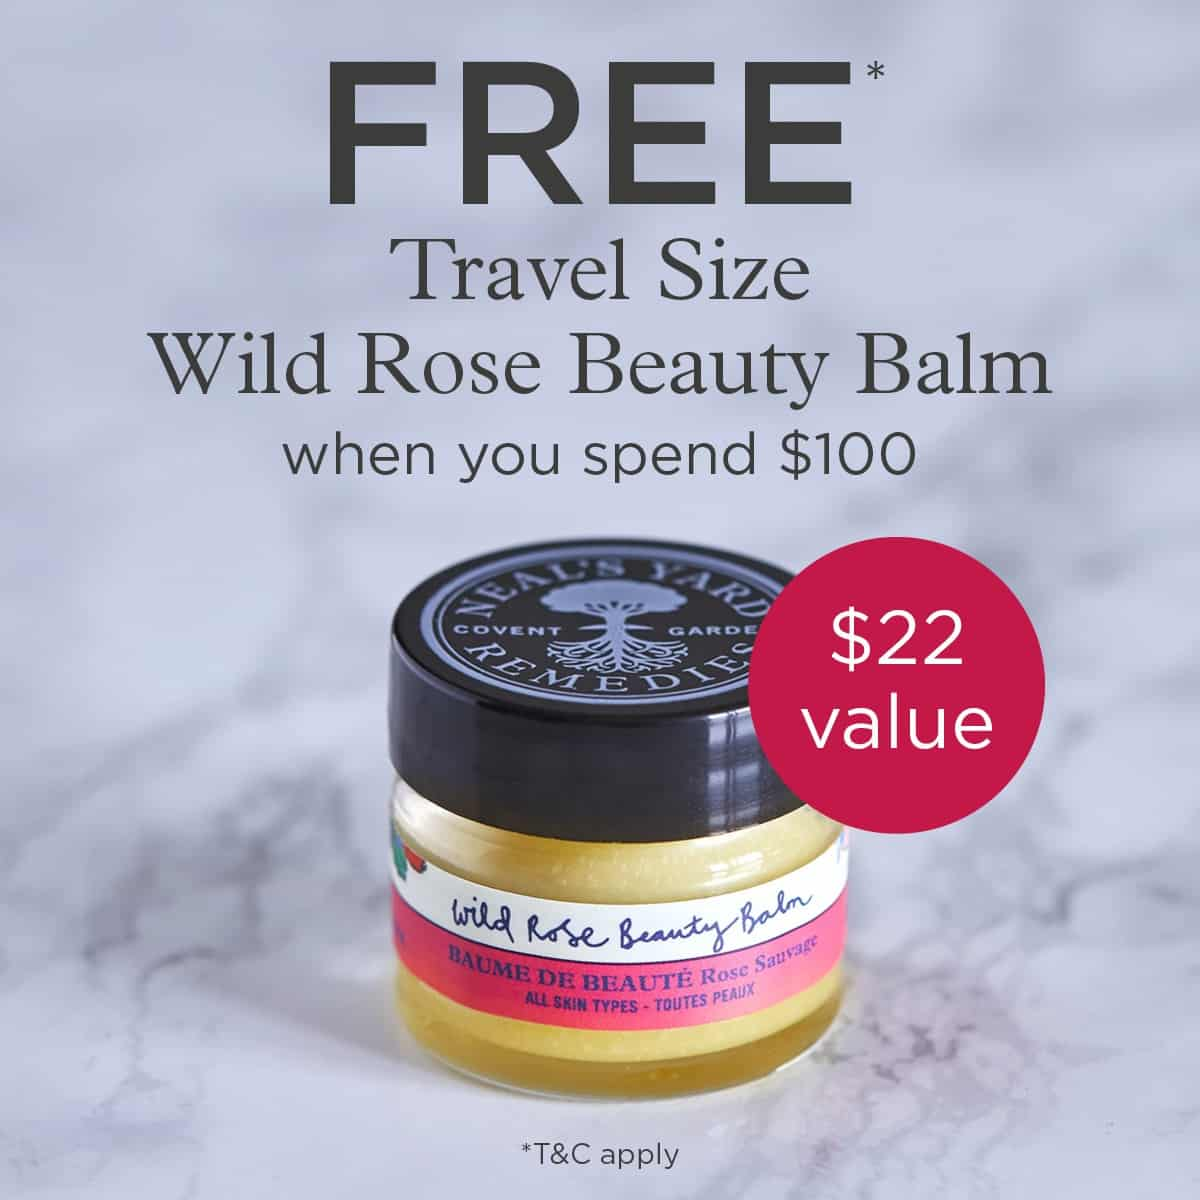 Grab this FREE Wild Rose Beauty Balm Travel Size offer with $100 order. Intrigued by this product? Check out this article or come ask questions in my VIP group: https://www.facebook.com/groups/138483196559118/